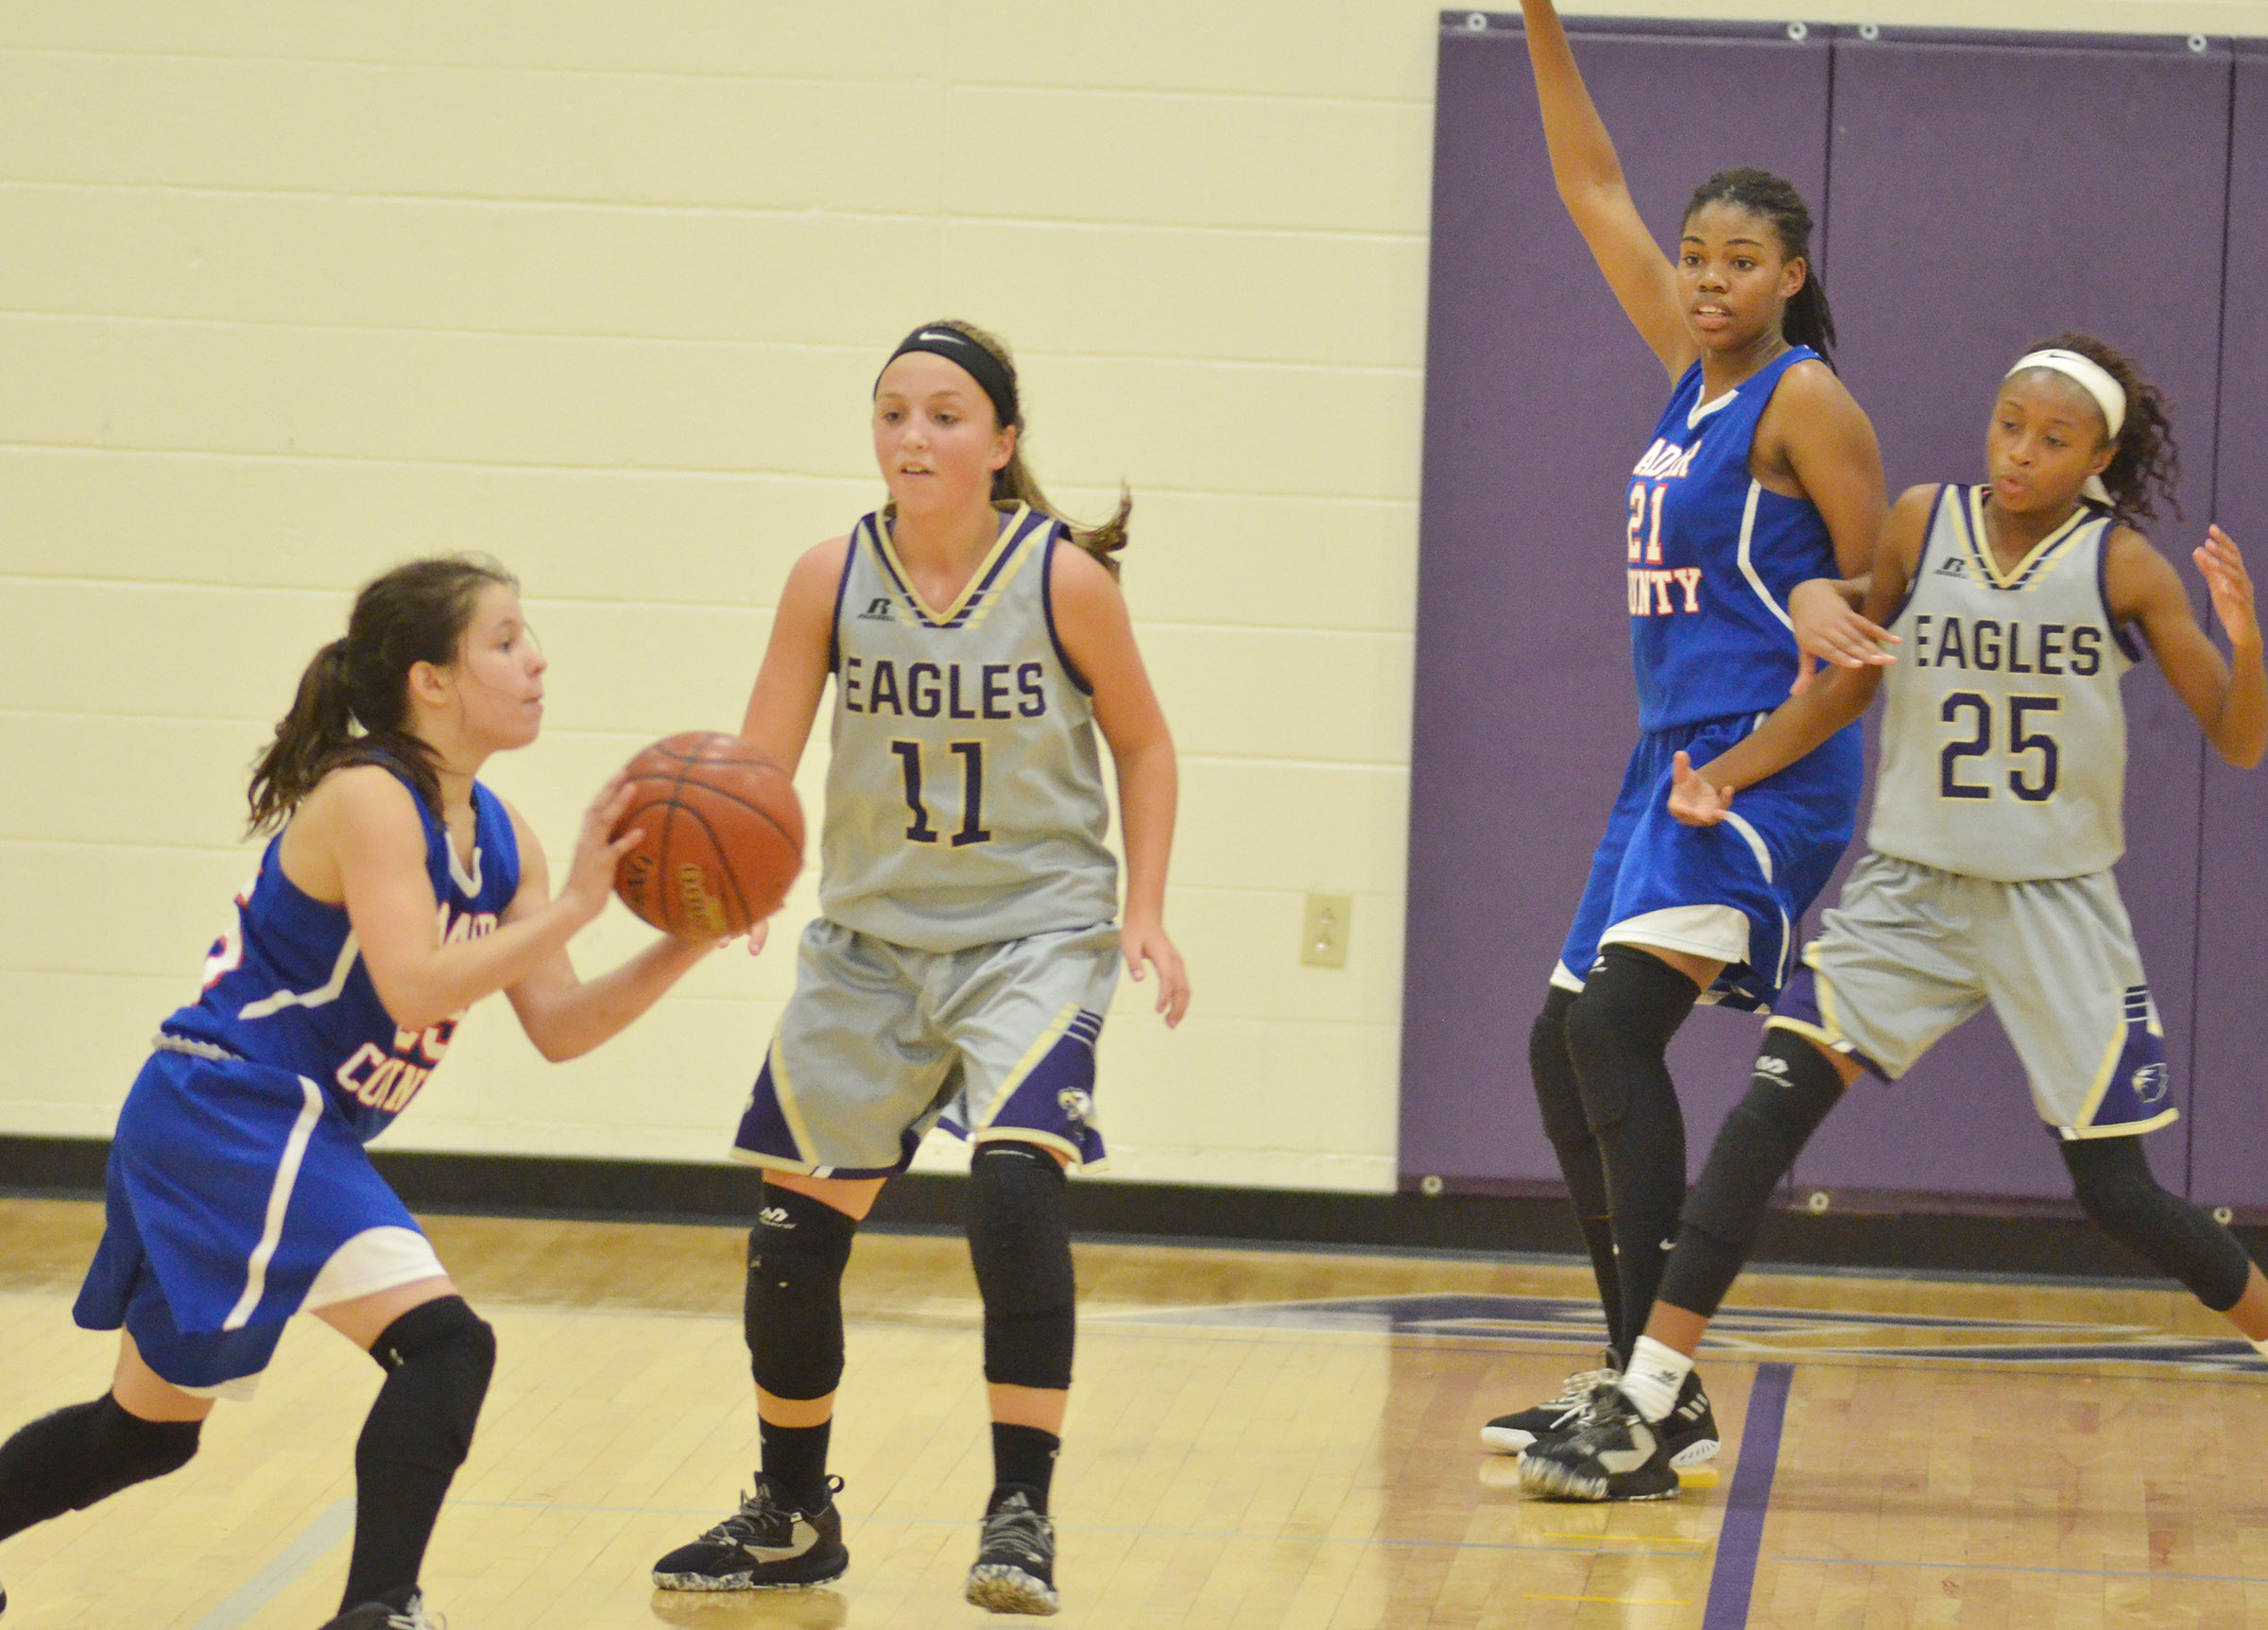 CMS eighth-graders Lainey Watson, at left, and Bri Gowdy play defense.